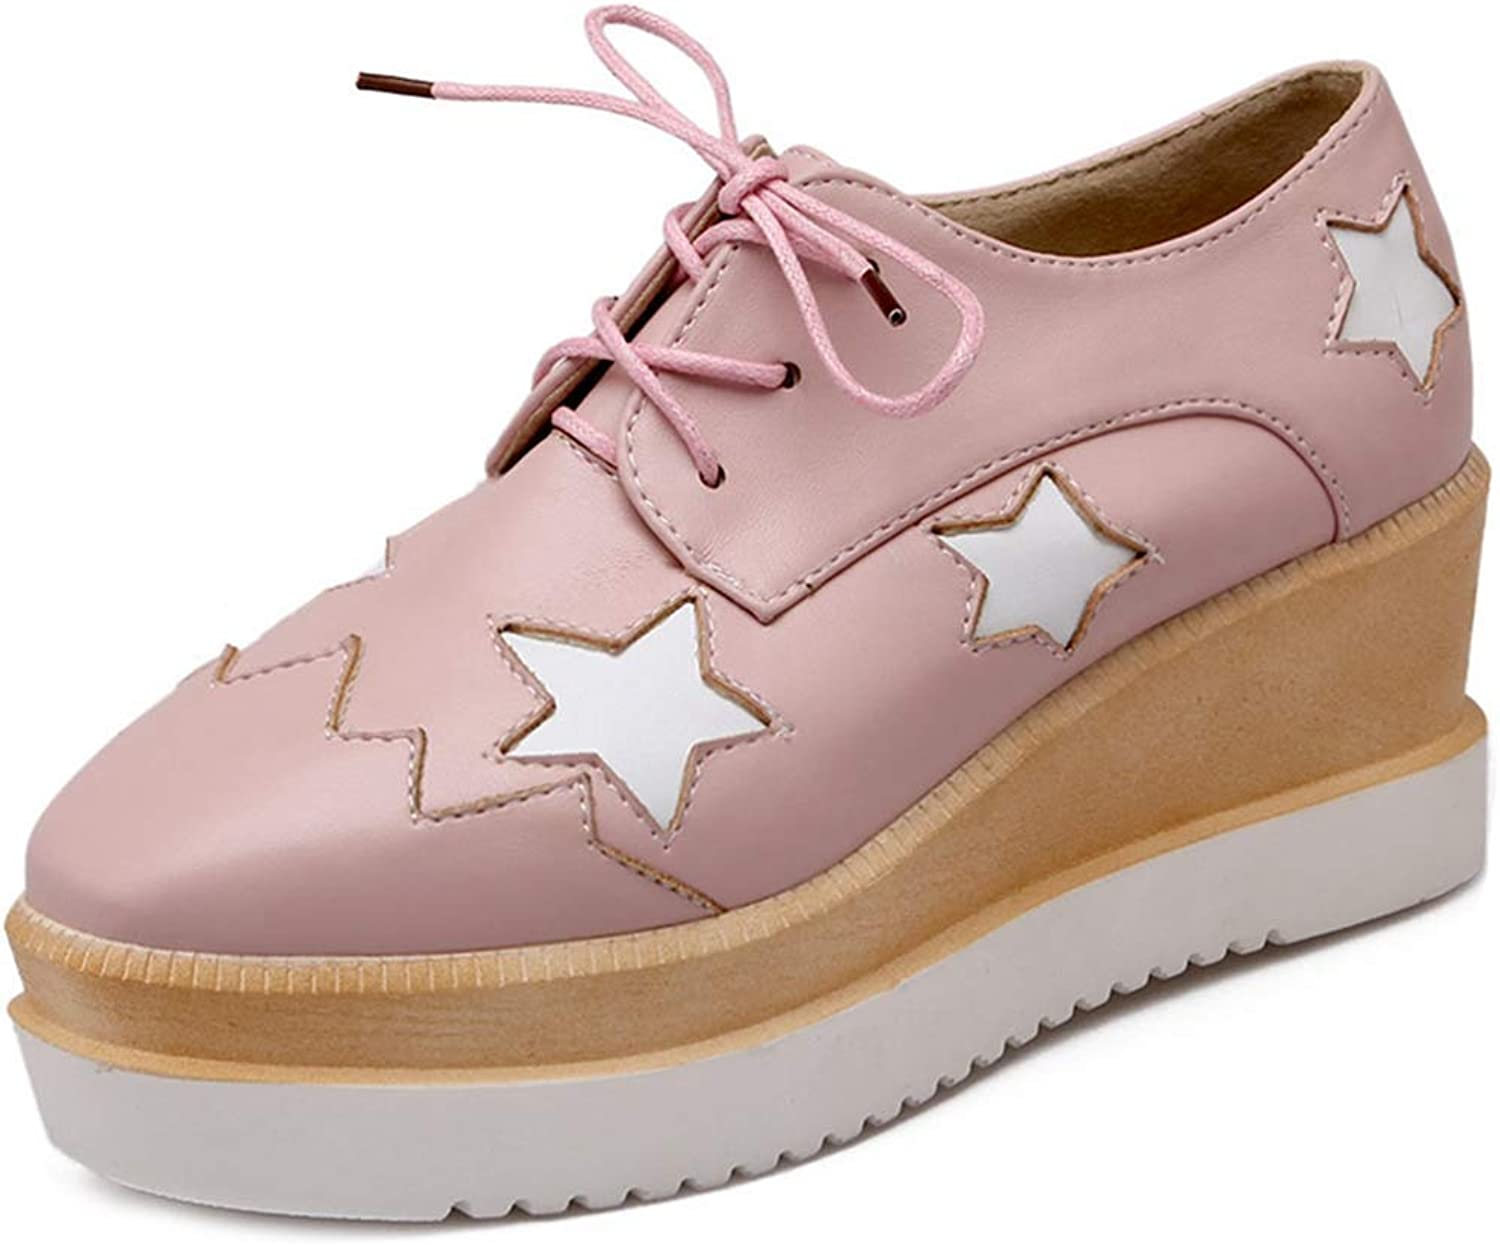 Beautiful - Fashion Platform Wedge Oxfords shoes for Women Wingtip Lace-Up Chunky High Heel Stars Classic Dress Pumps